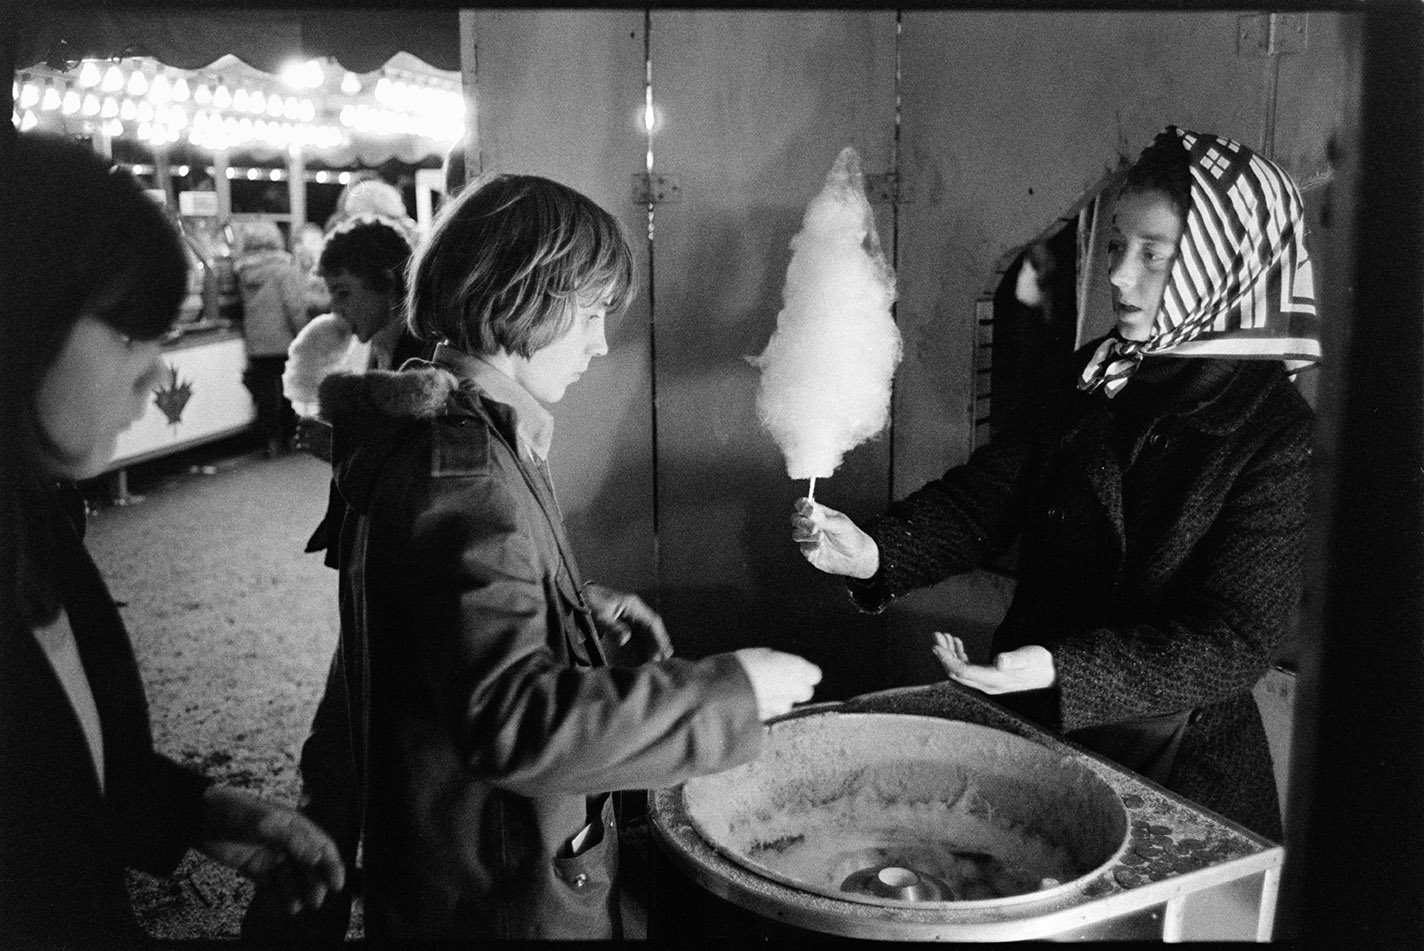 Woman selling candy floss, Torrington Fair, 2 November 1974